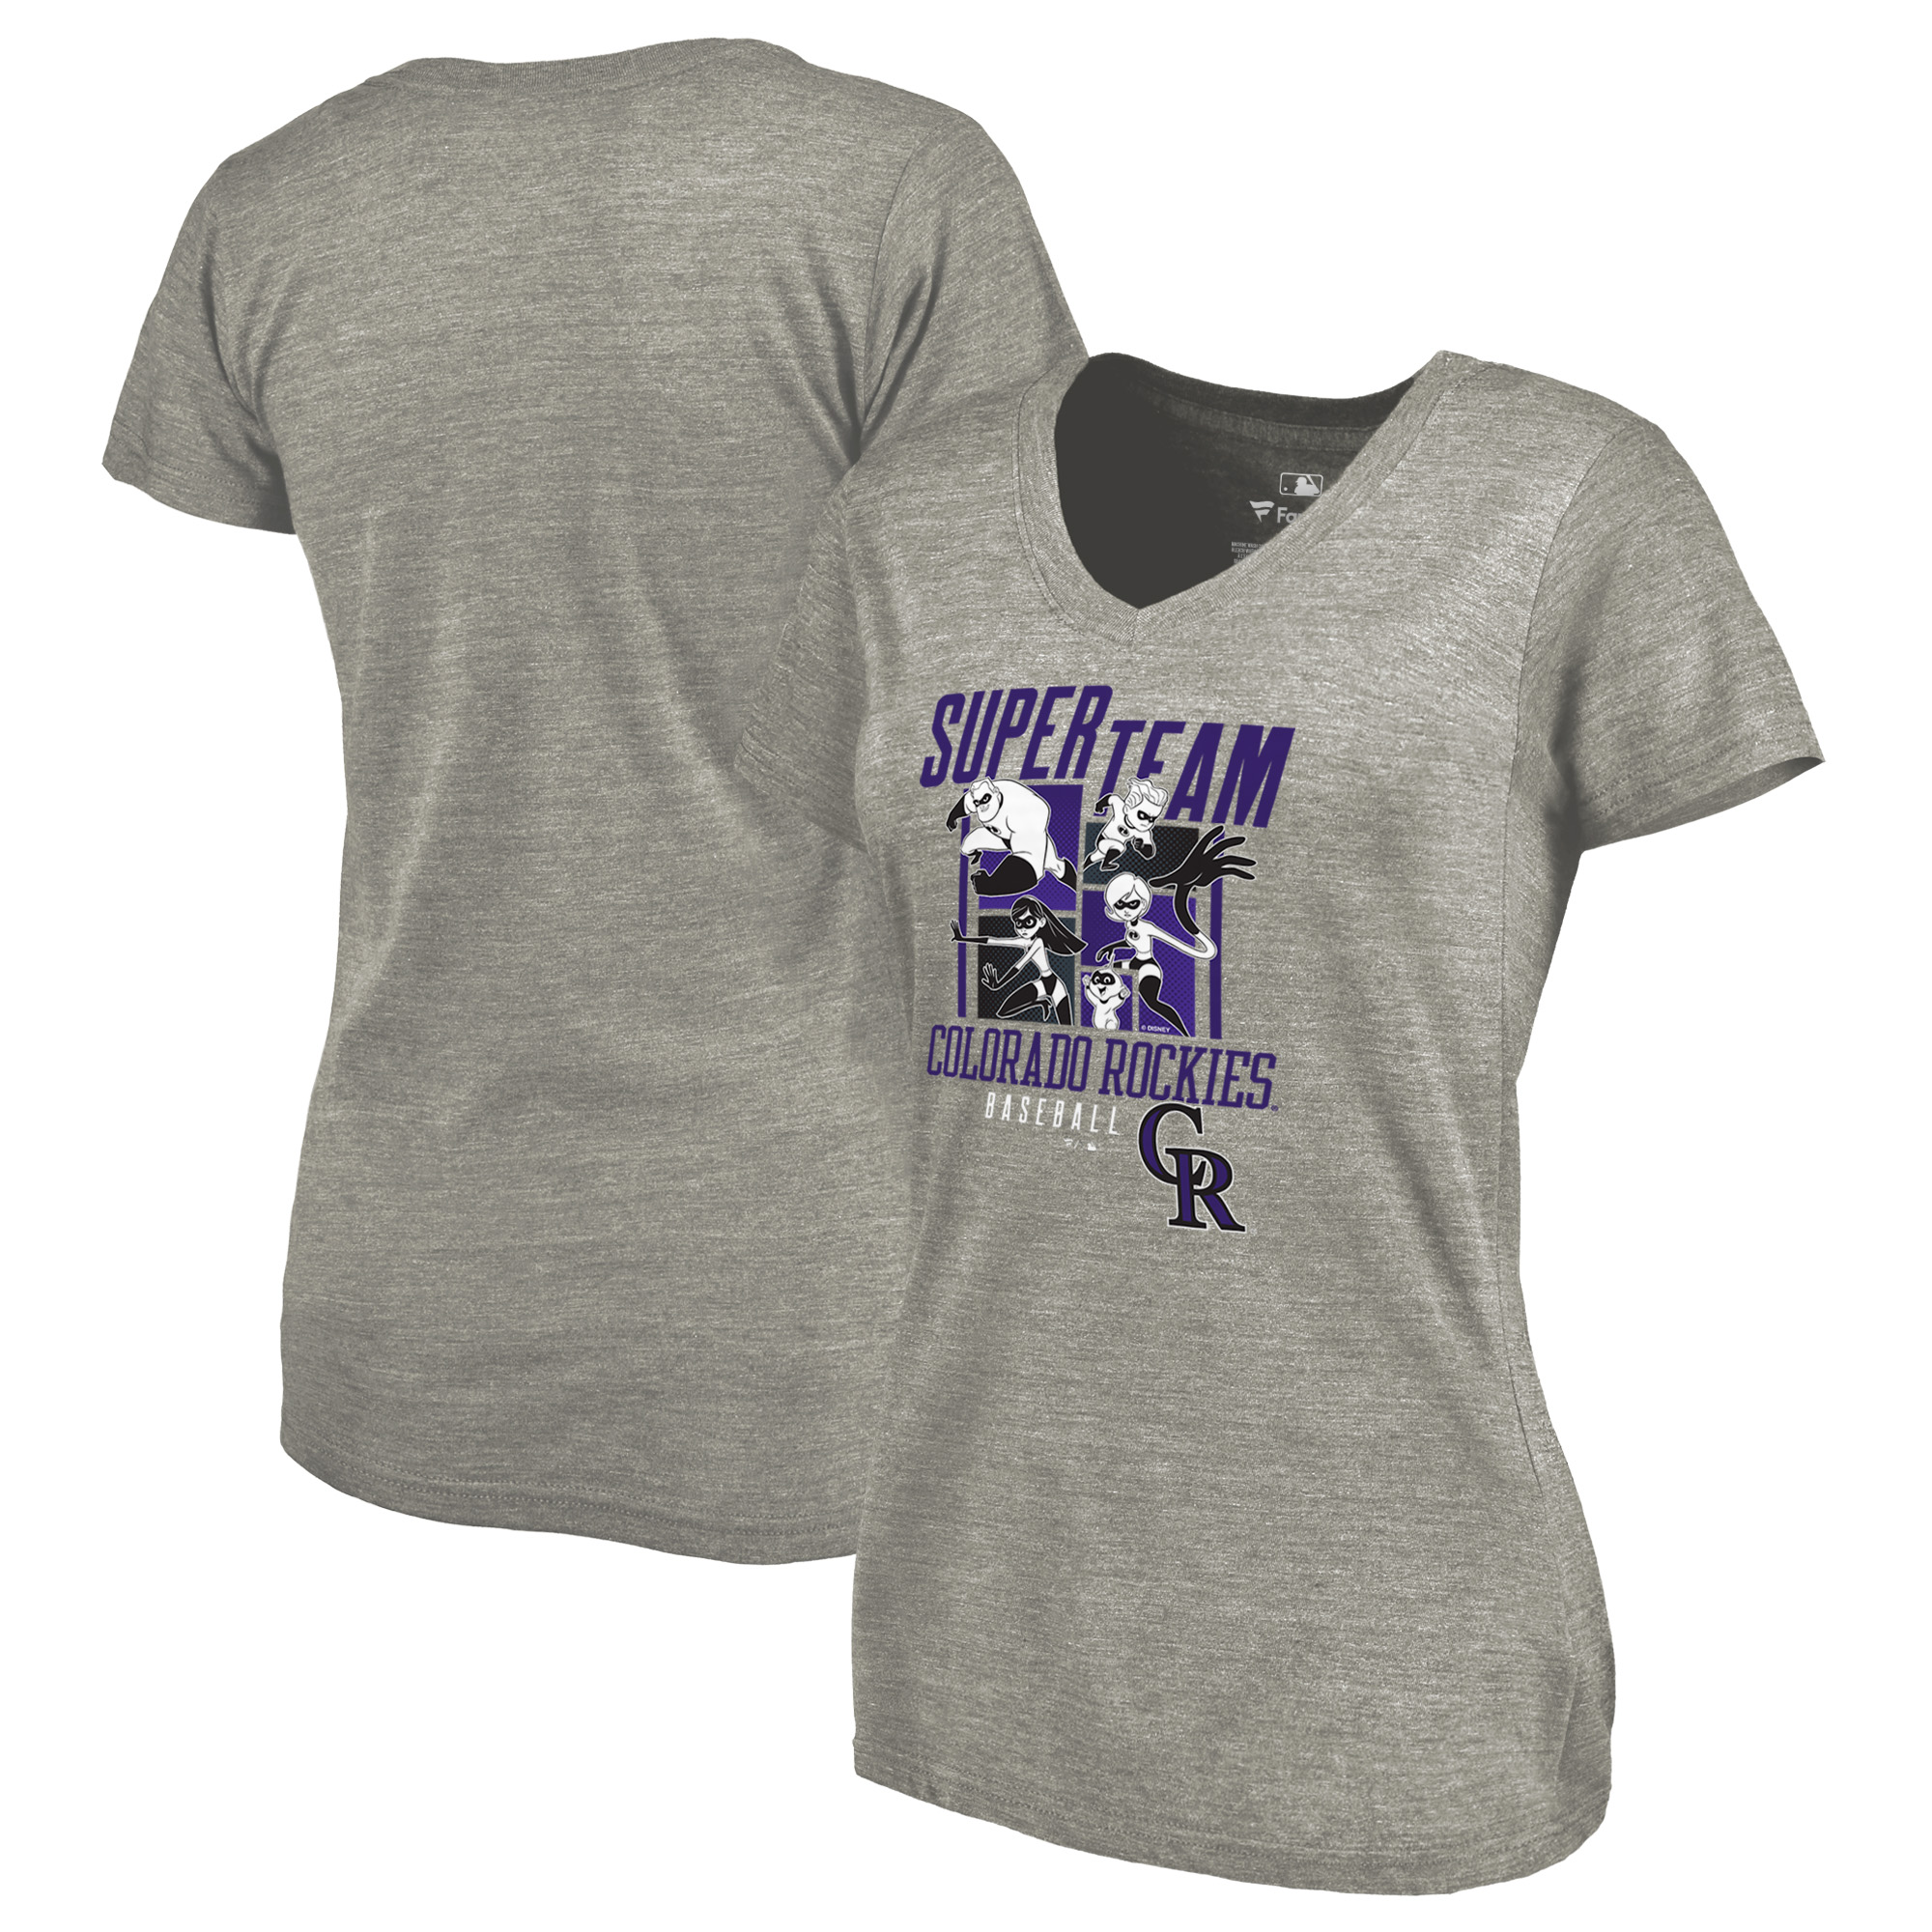 Colorado Rockies Fanatics Branded Women's Disney Pixar Incredibles Super Team Tri-Blend V-Neck T-Shirt - Heathered Gray